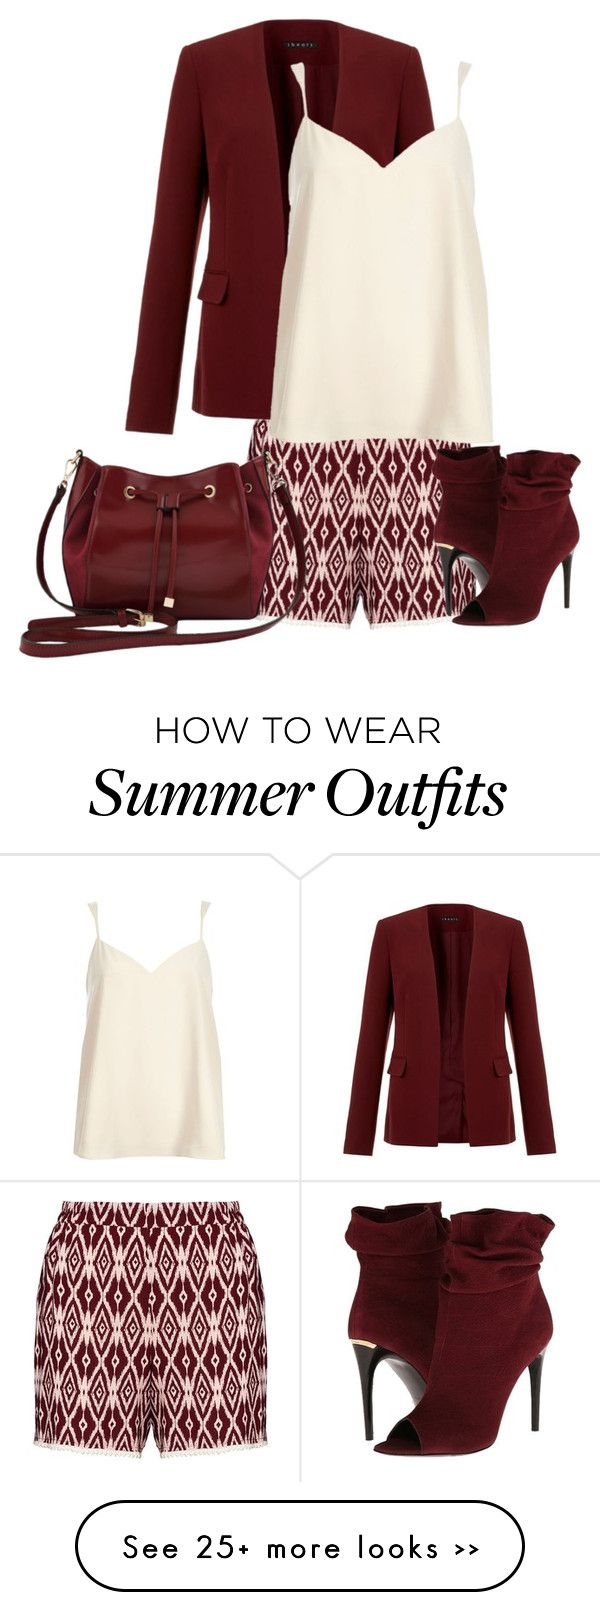 """shorts for fall"" by cm65 on Polyvore featuring Manon Baptiste, Theory, Burberry, M&Co and River Island"